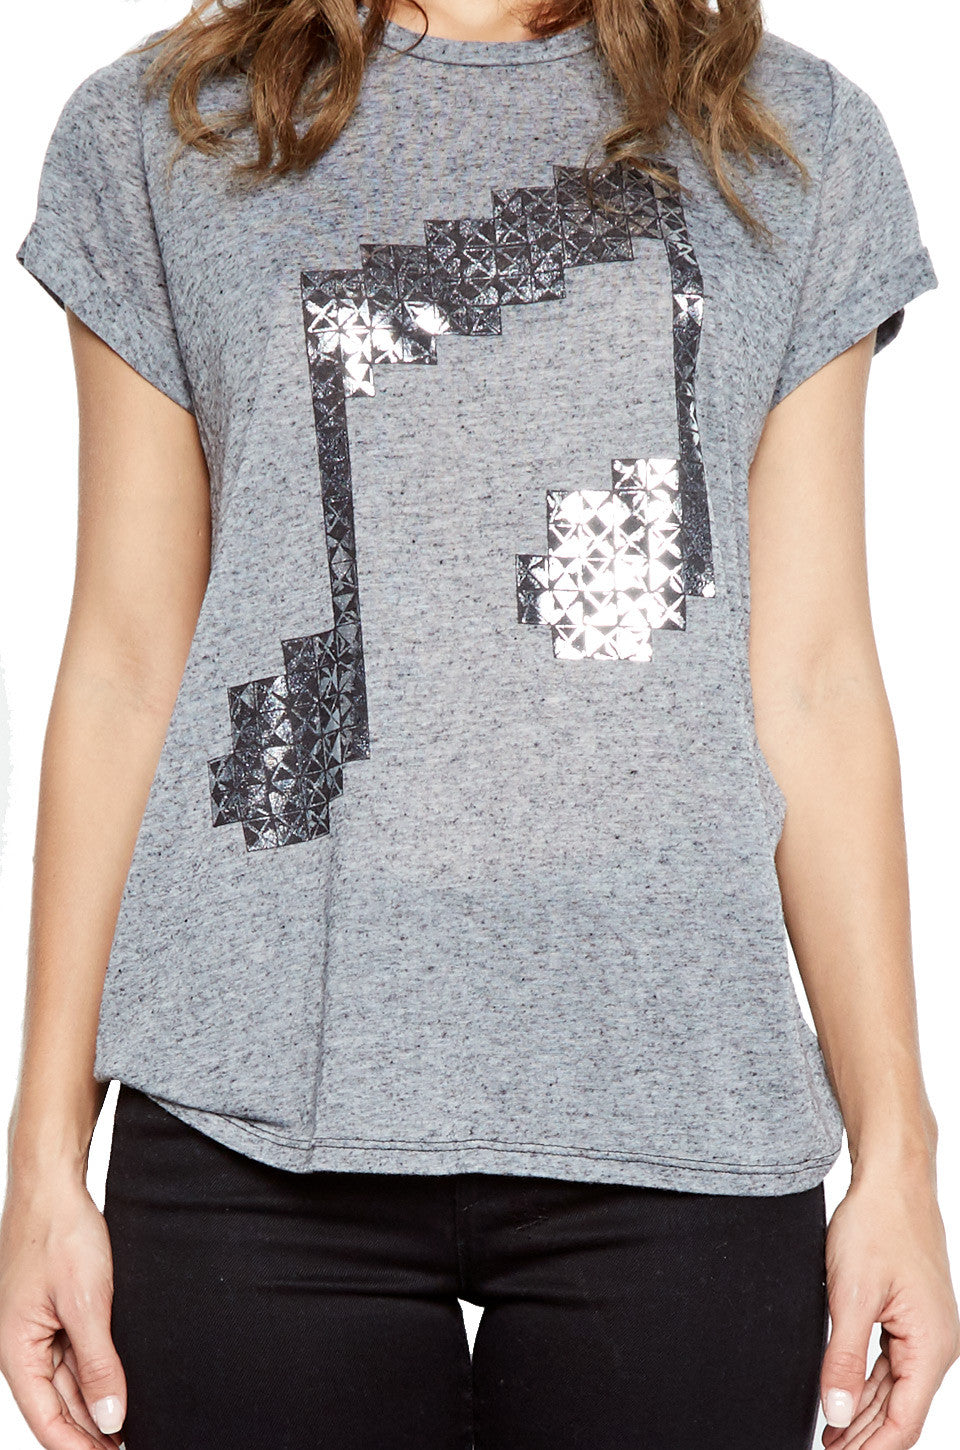 Edda Stud Music Note Vintage Tee Roll Up Sleeve - Lauren Moshi